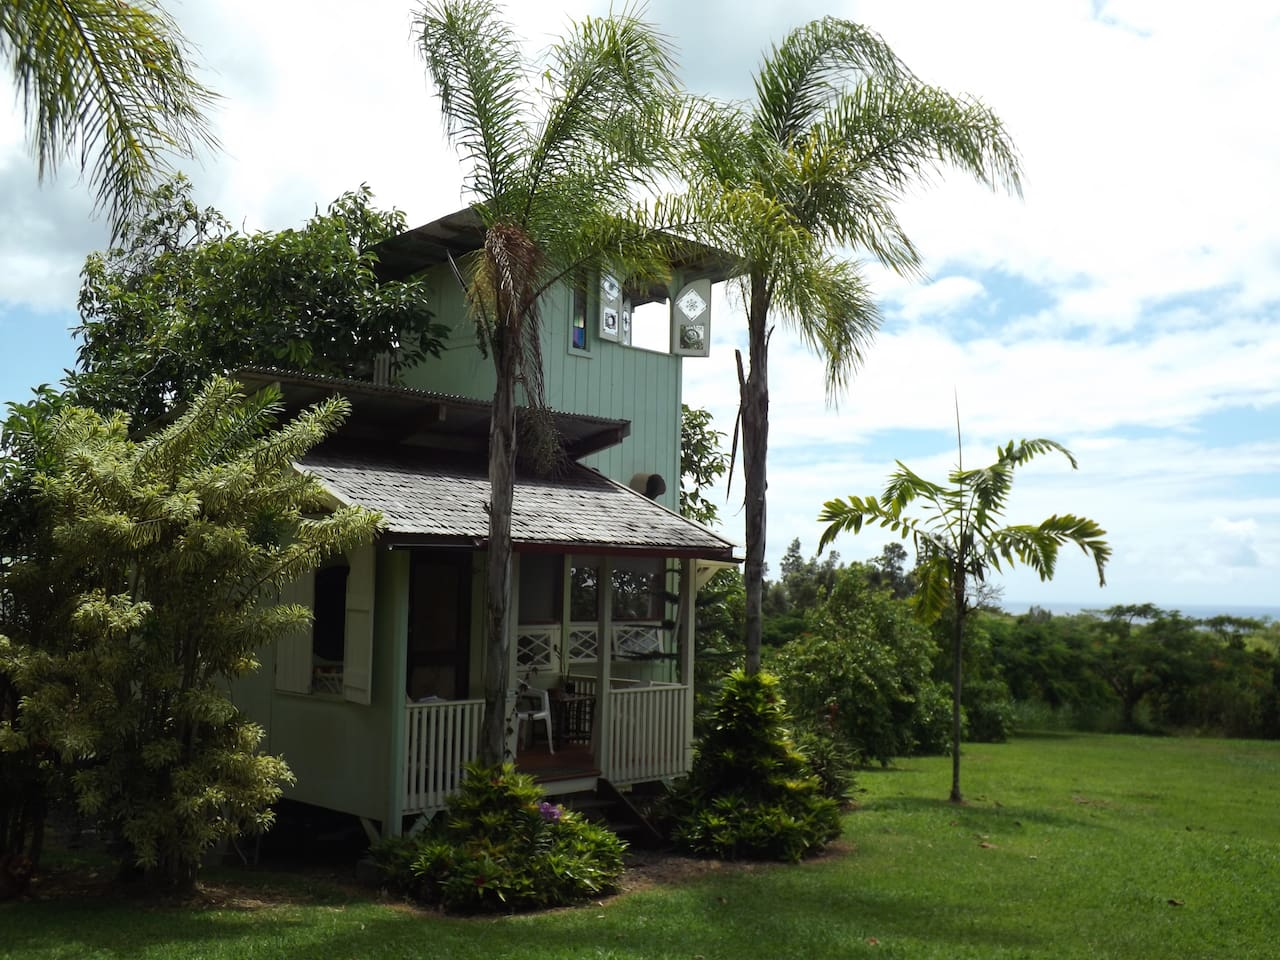 The Avocado Tree House is surrounded by palms and fruit trees with the ocean on the horizon.